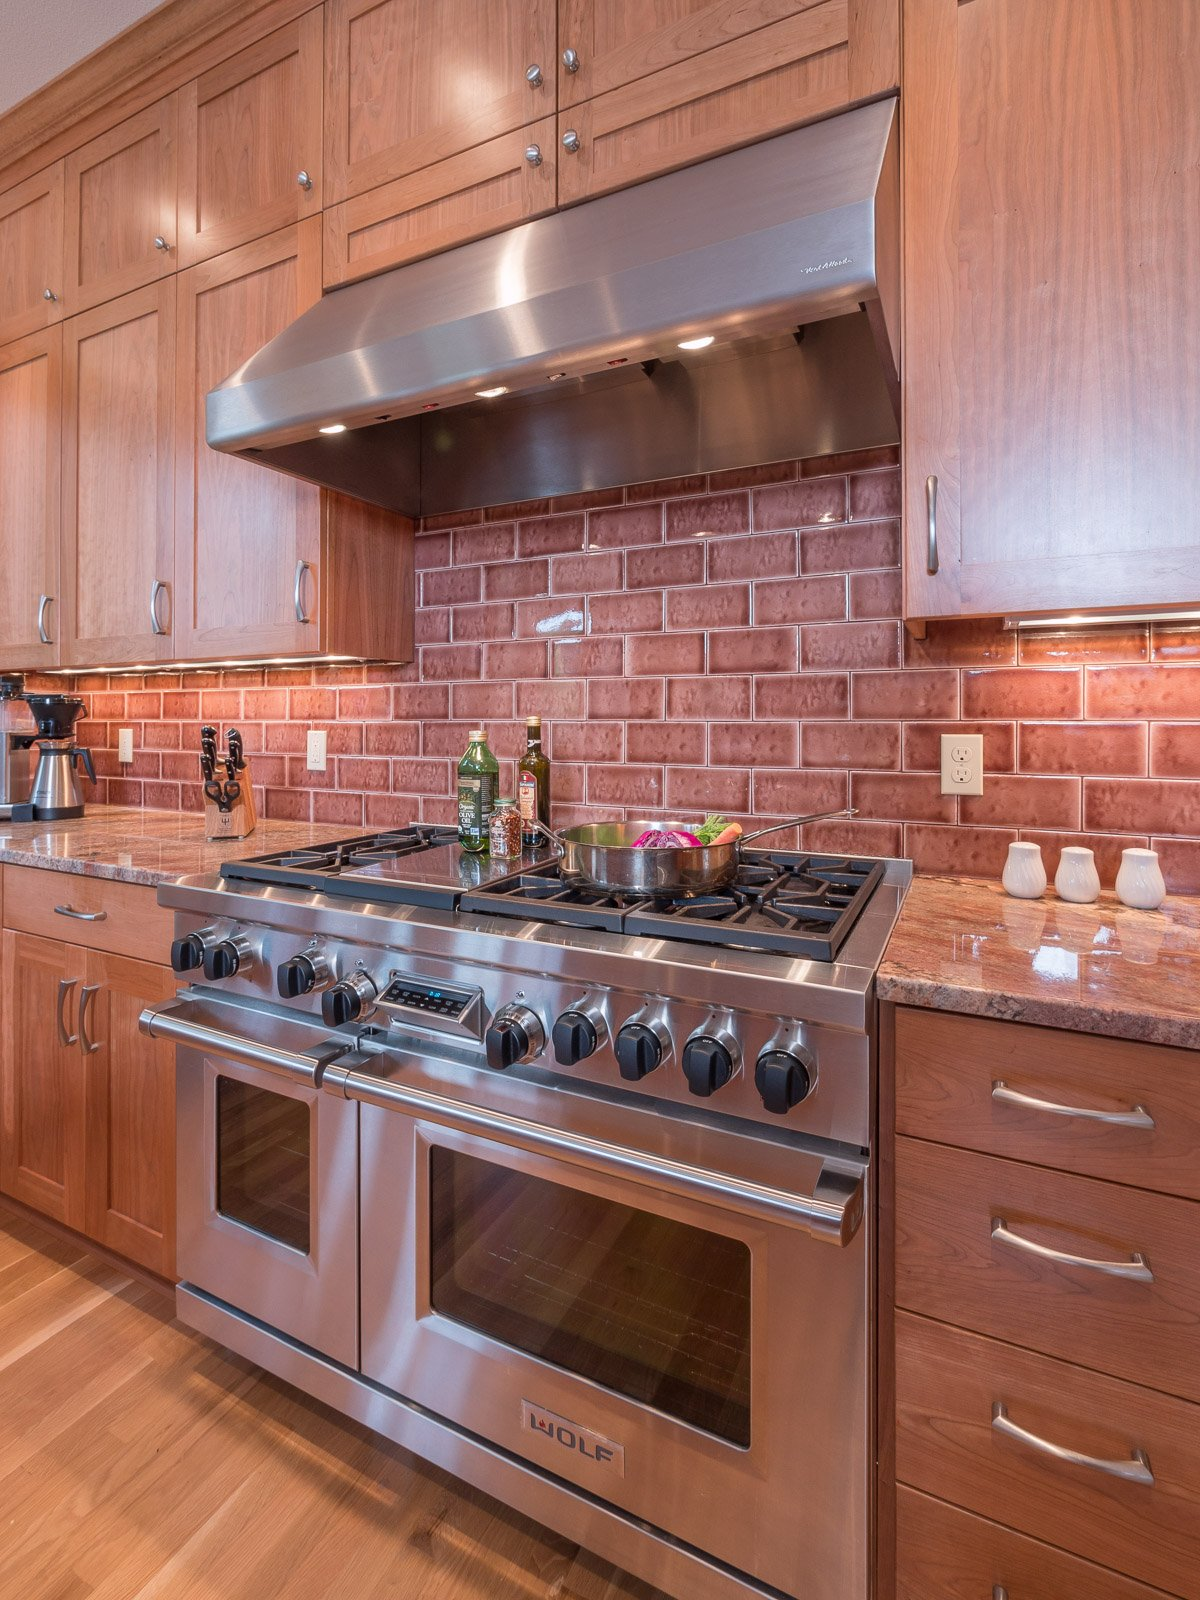 Contemporary Portland kitchen with stainless steel oven and brick backsplash